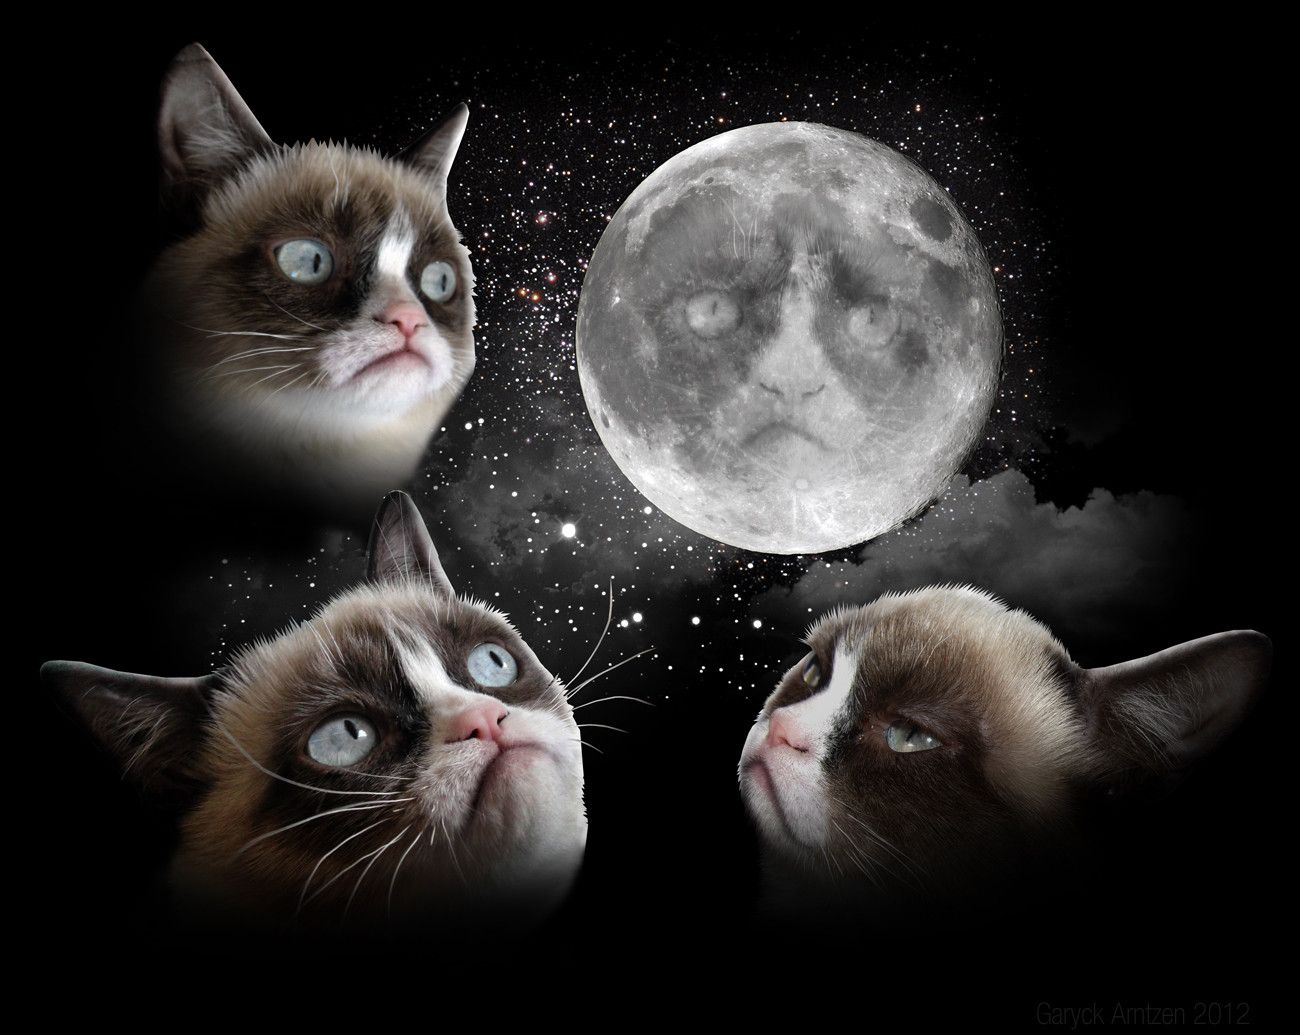 Now this is a t-shirt i want! 3 grumpy cat moon